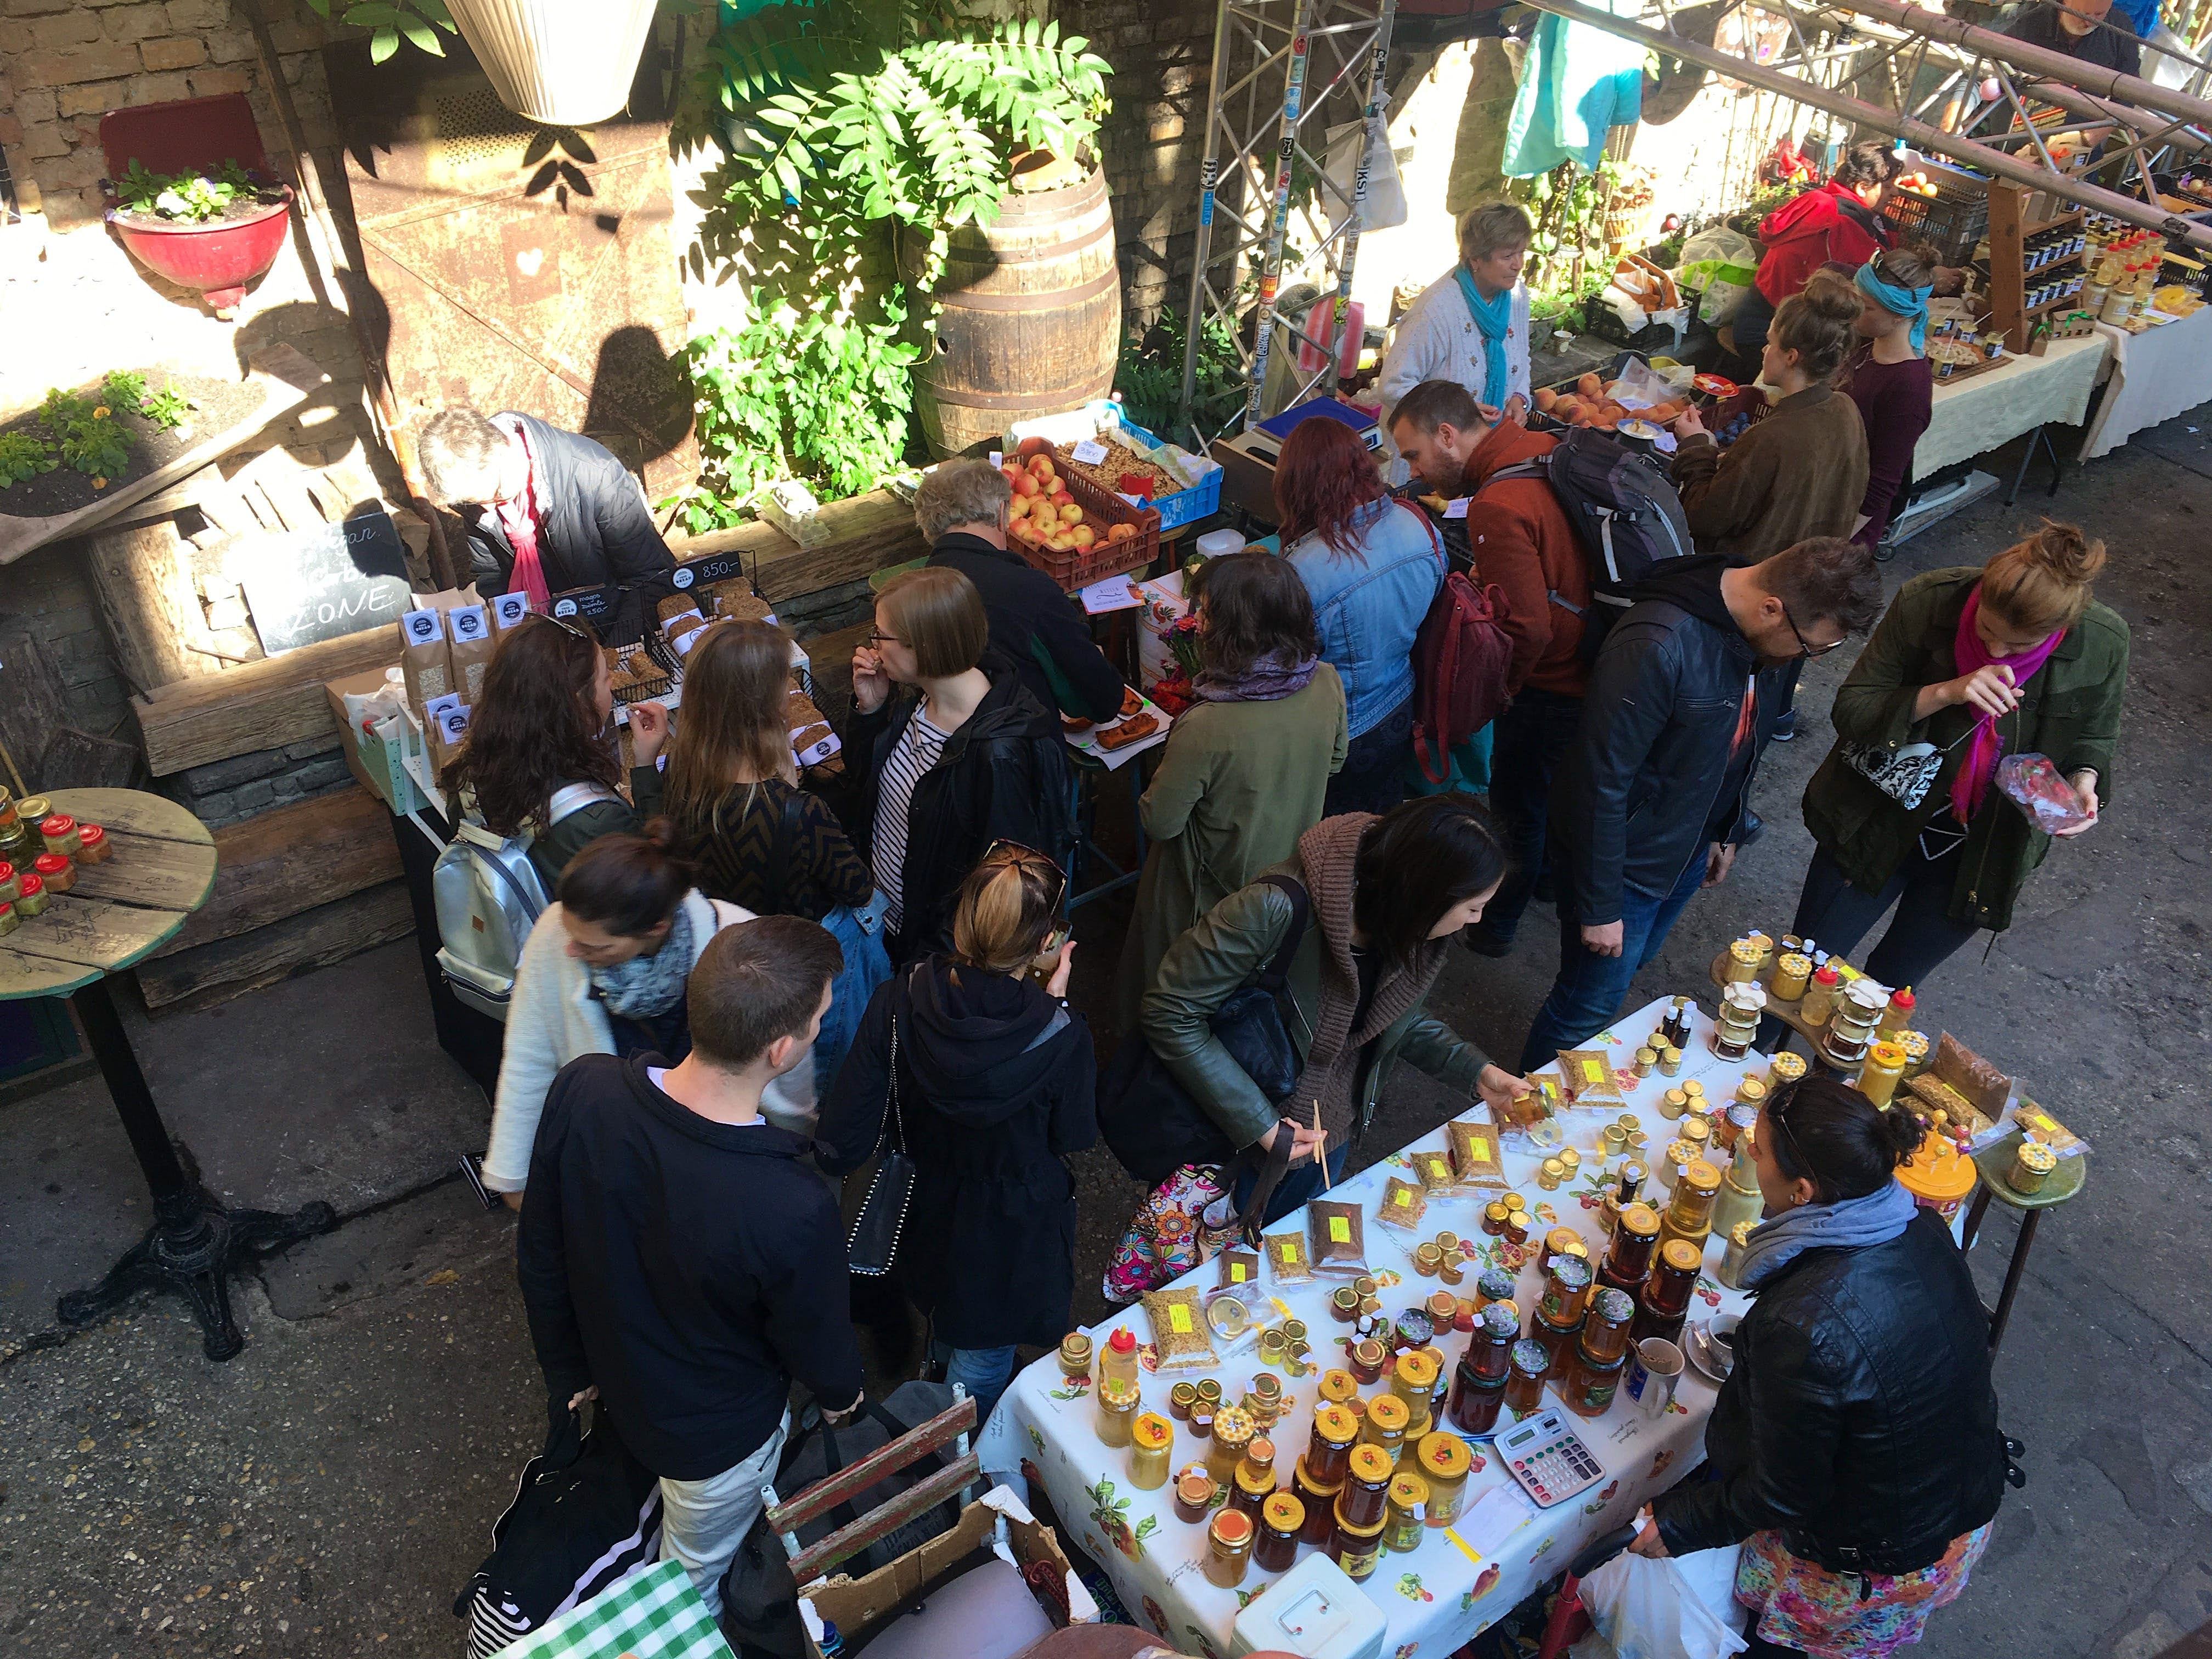 The ruin pub Szimpla Kert turns into a farmers' market on Sundays in Budapest